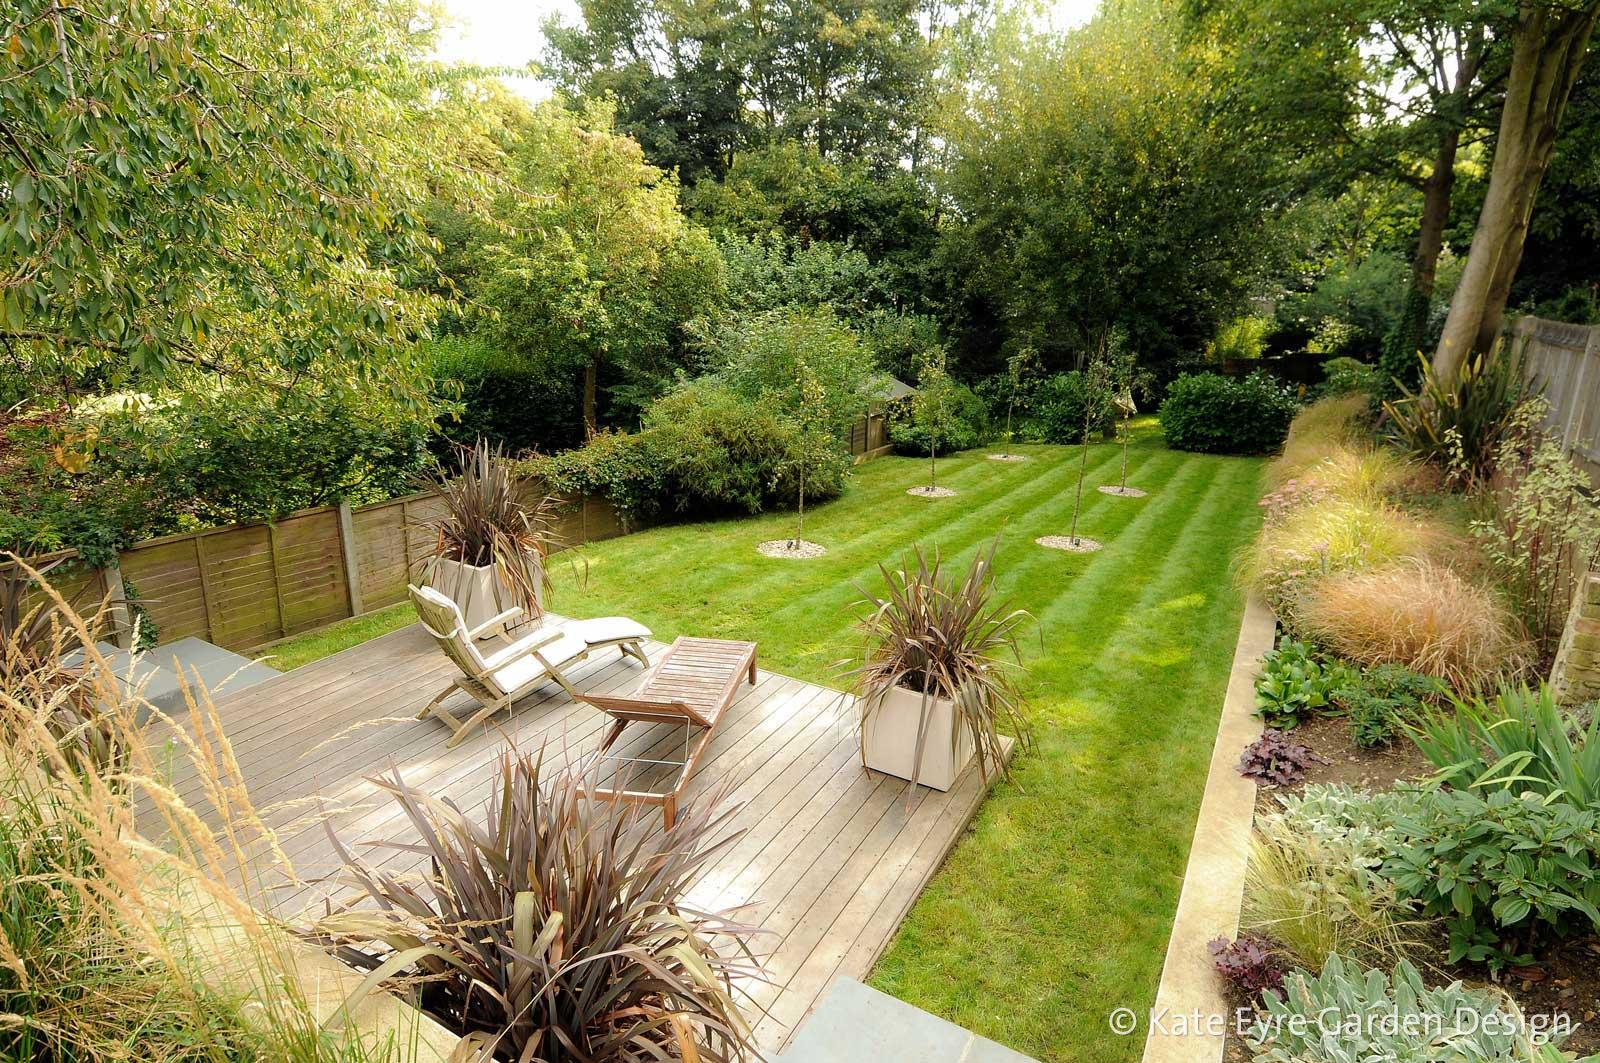 Garden design in crystal palace south east london for A garden design